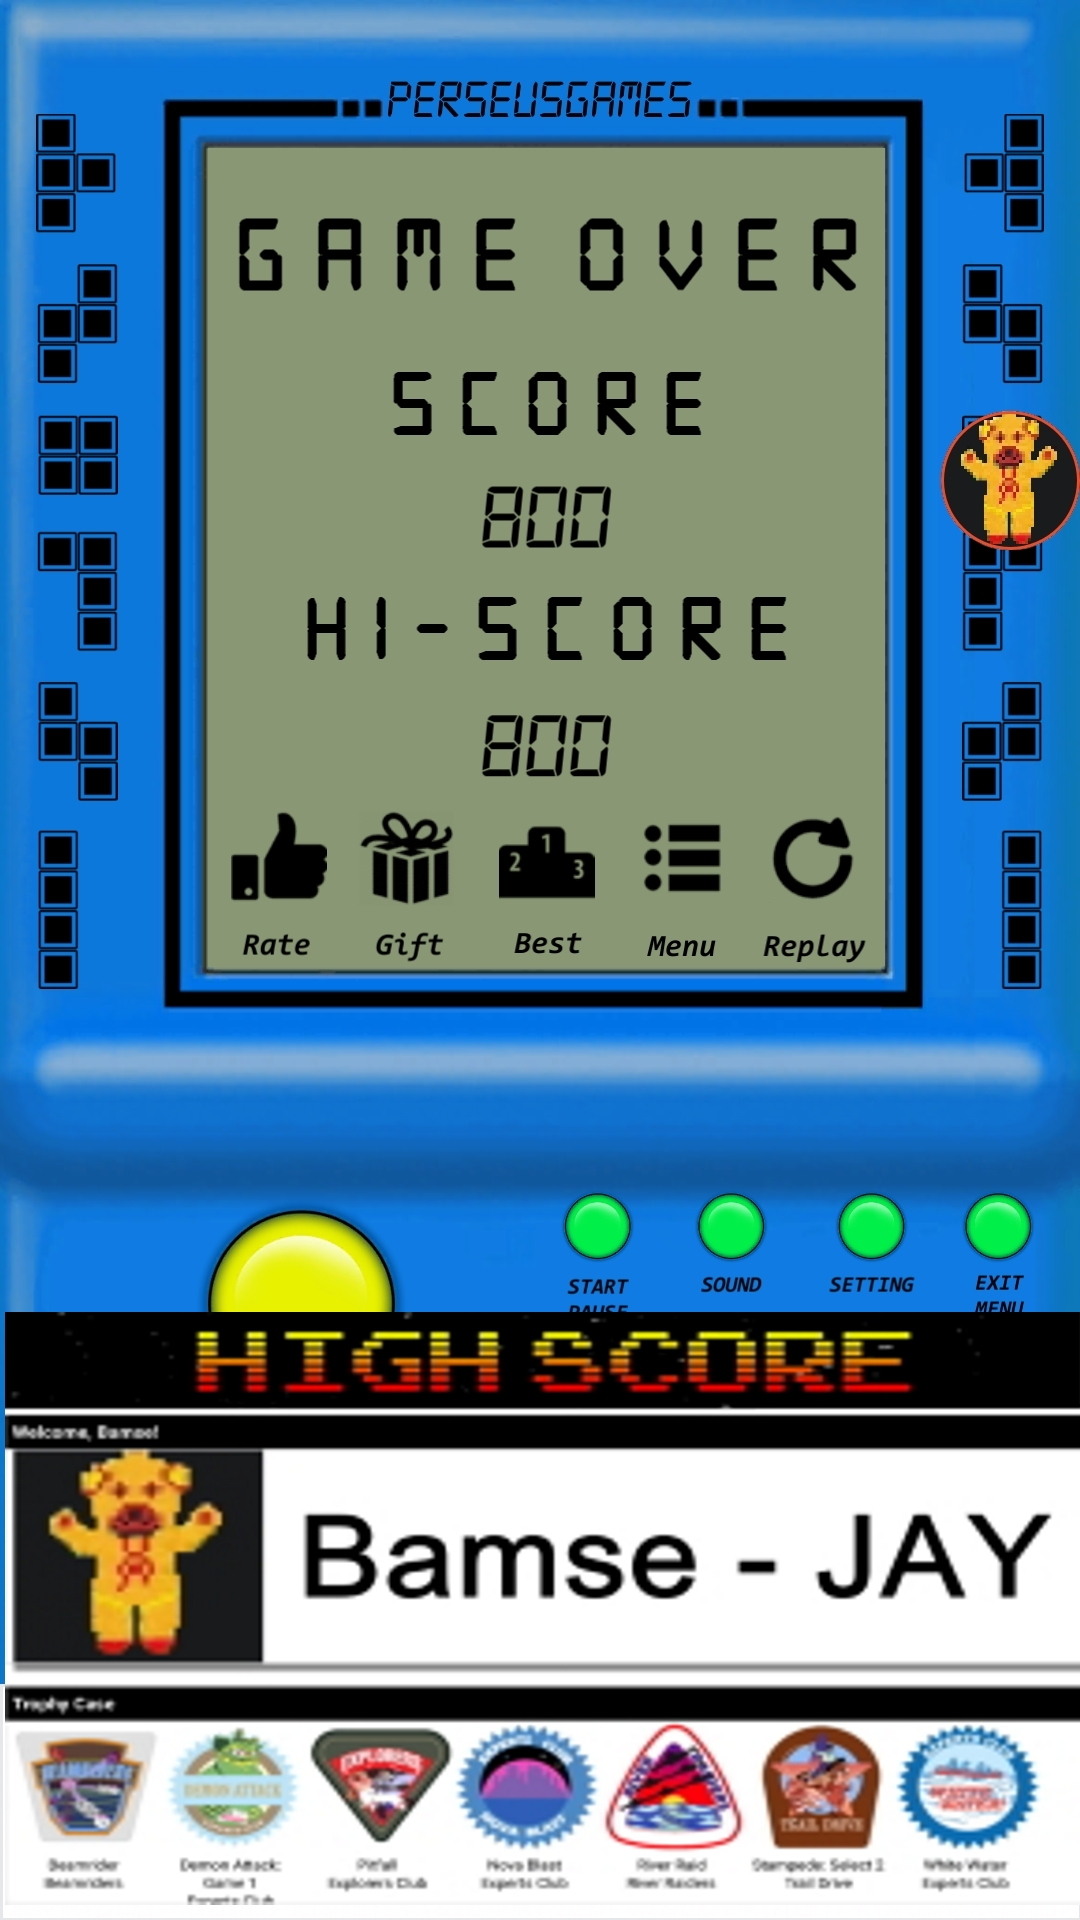 Bamse: Brick Game: Game S (Android) 800 points on 2019-12-30 17:35:32